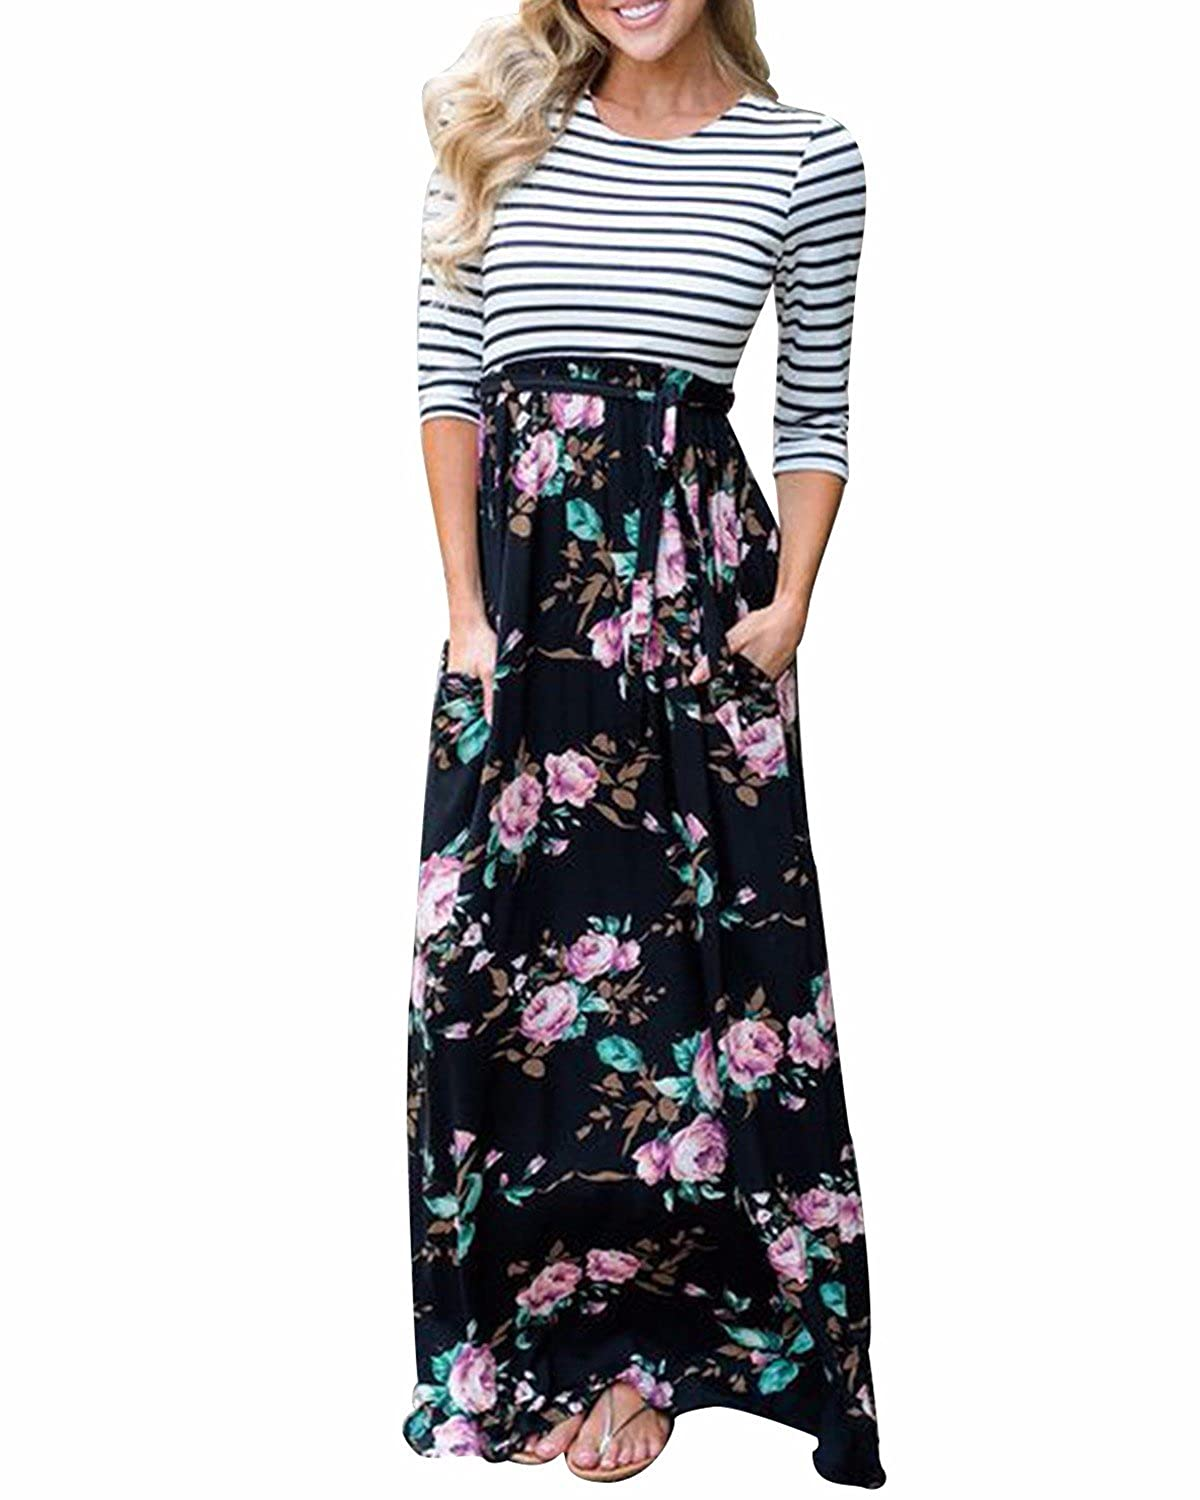 Blackf GIKING Women's Casual Short Sleeve Striped Round Neck Pleated Long Maxi Dress with Pockets